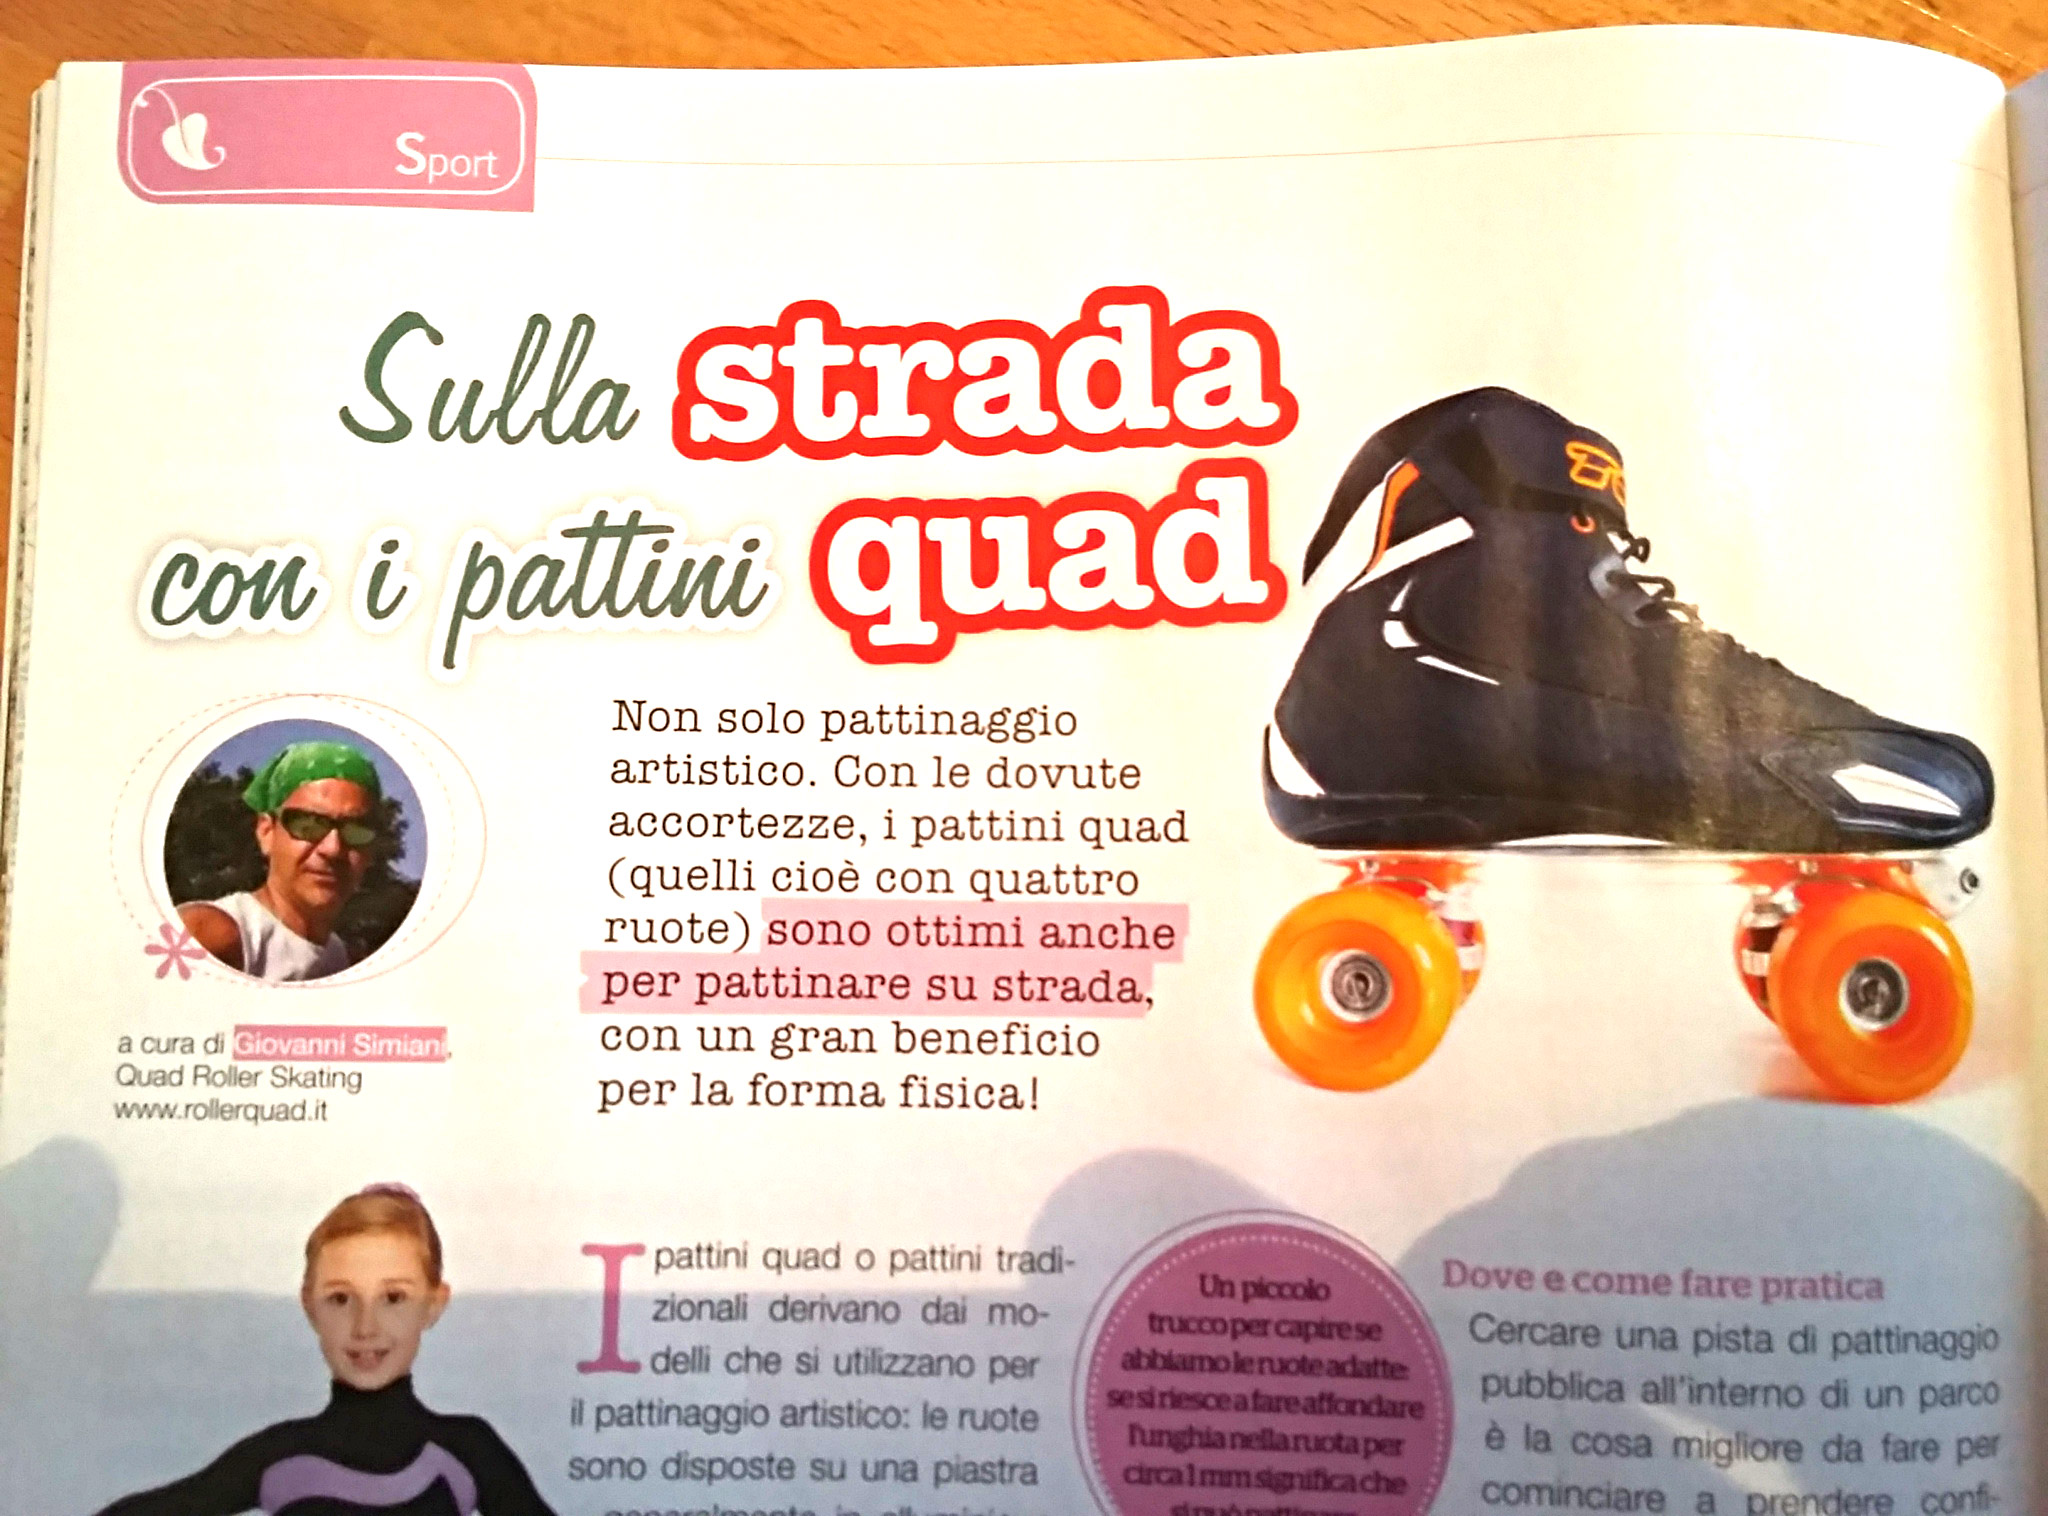 Pattinare in strada con i pattini quad